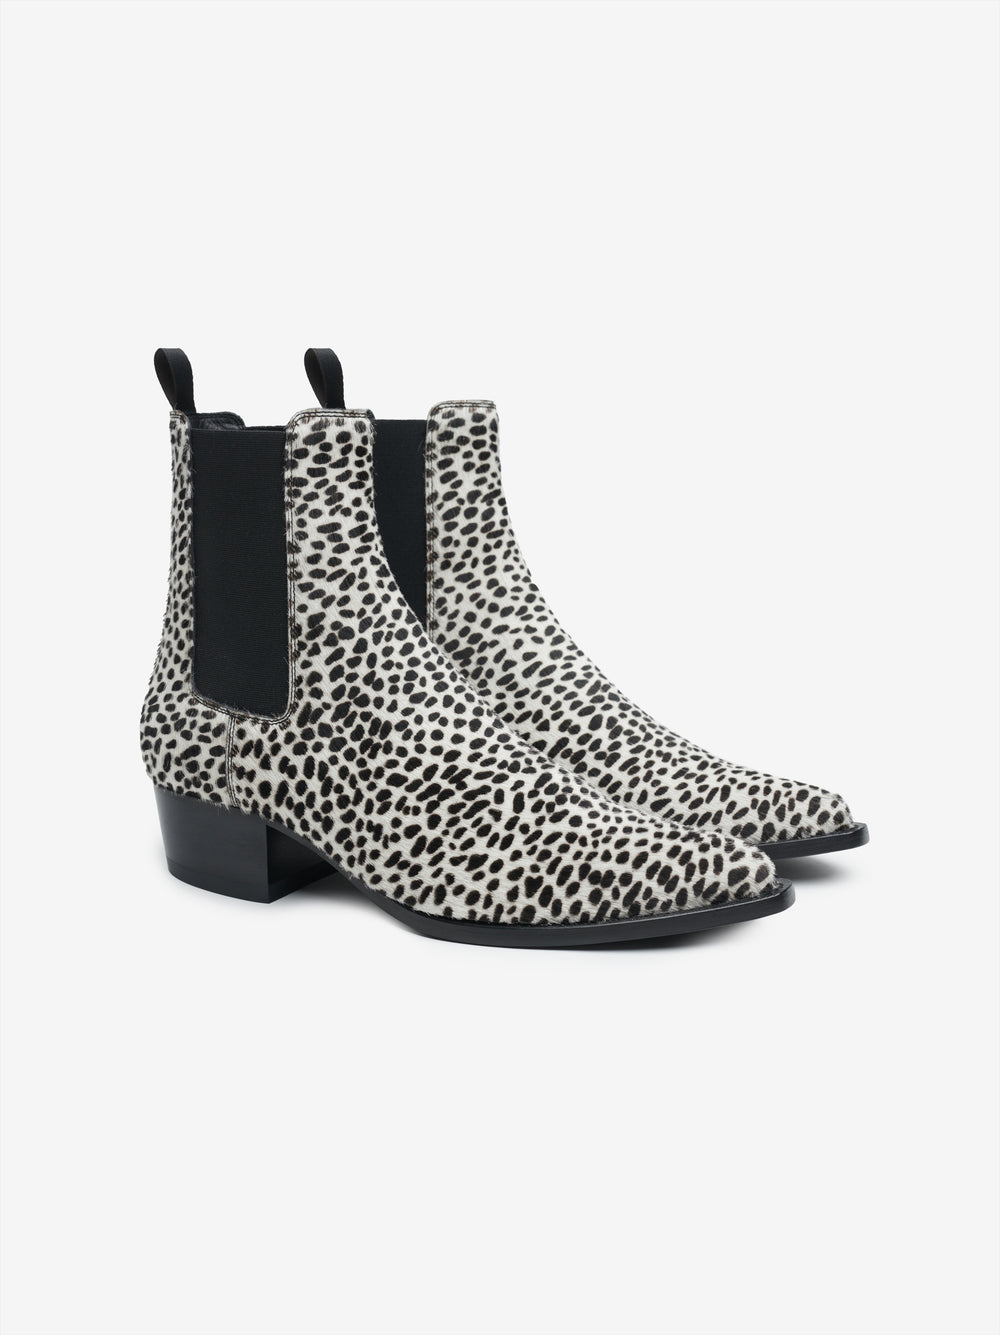 CHELSEA LEATHER SOLE BOOT - Black / White